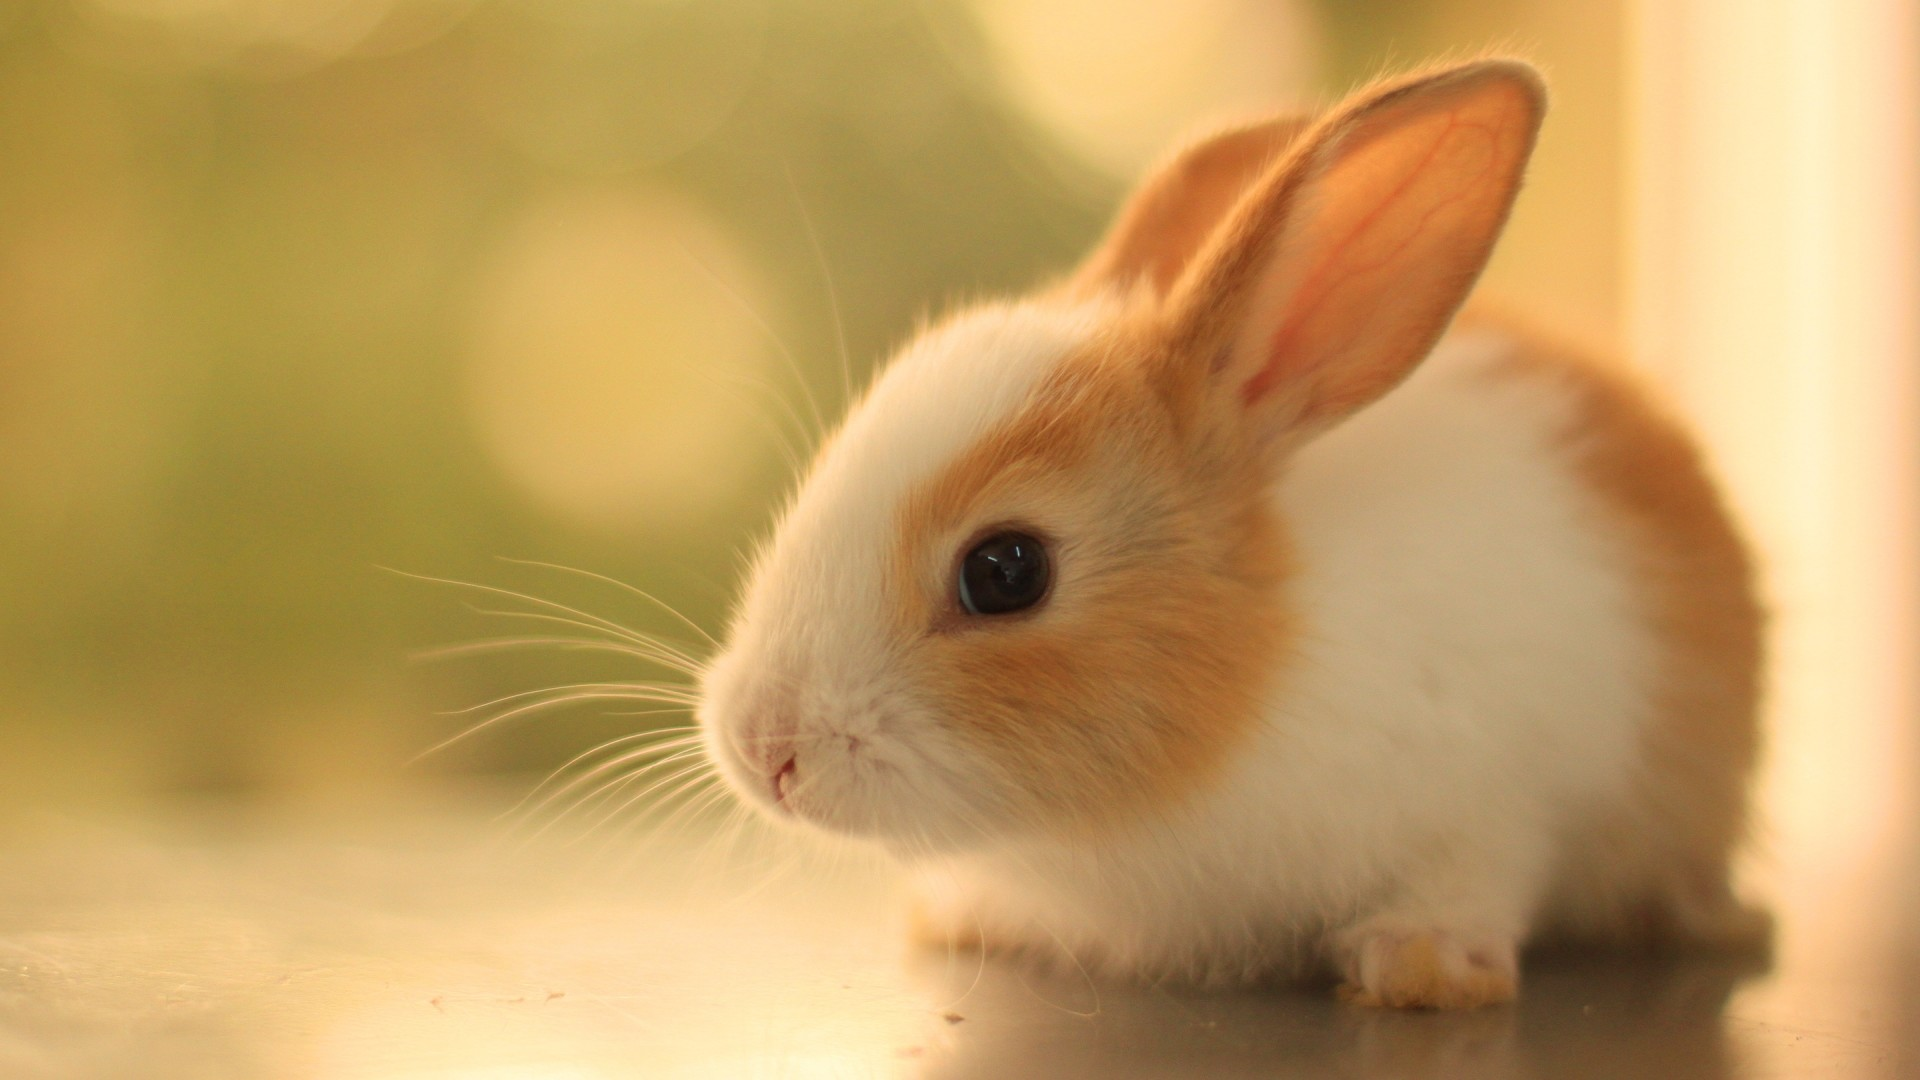 1920x1080 innocent cute rabbit hd desktop wallpaper widescreen backgrounds .